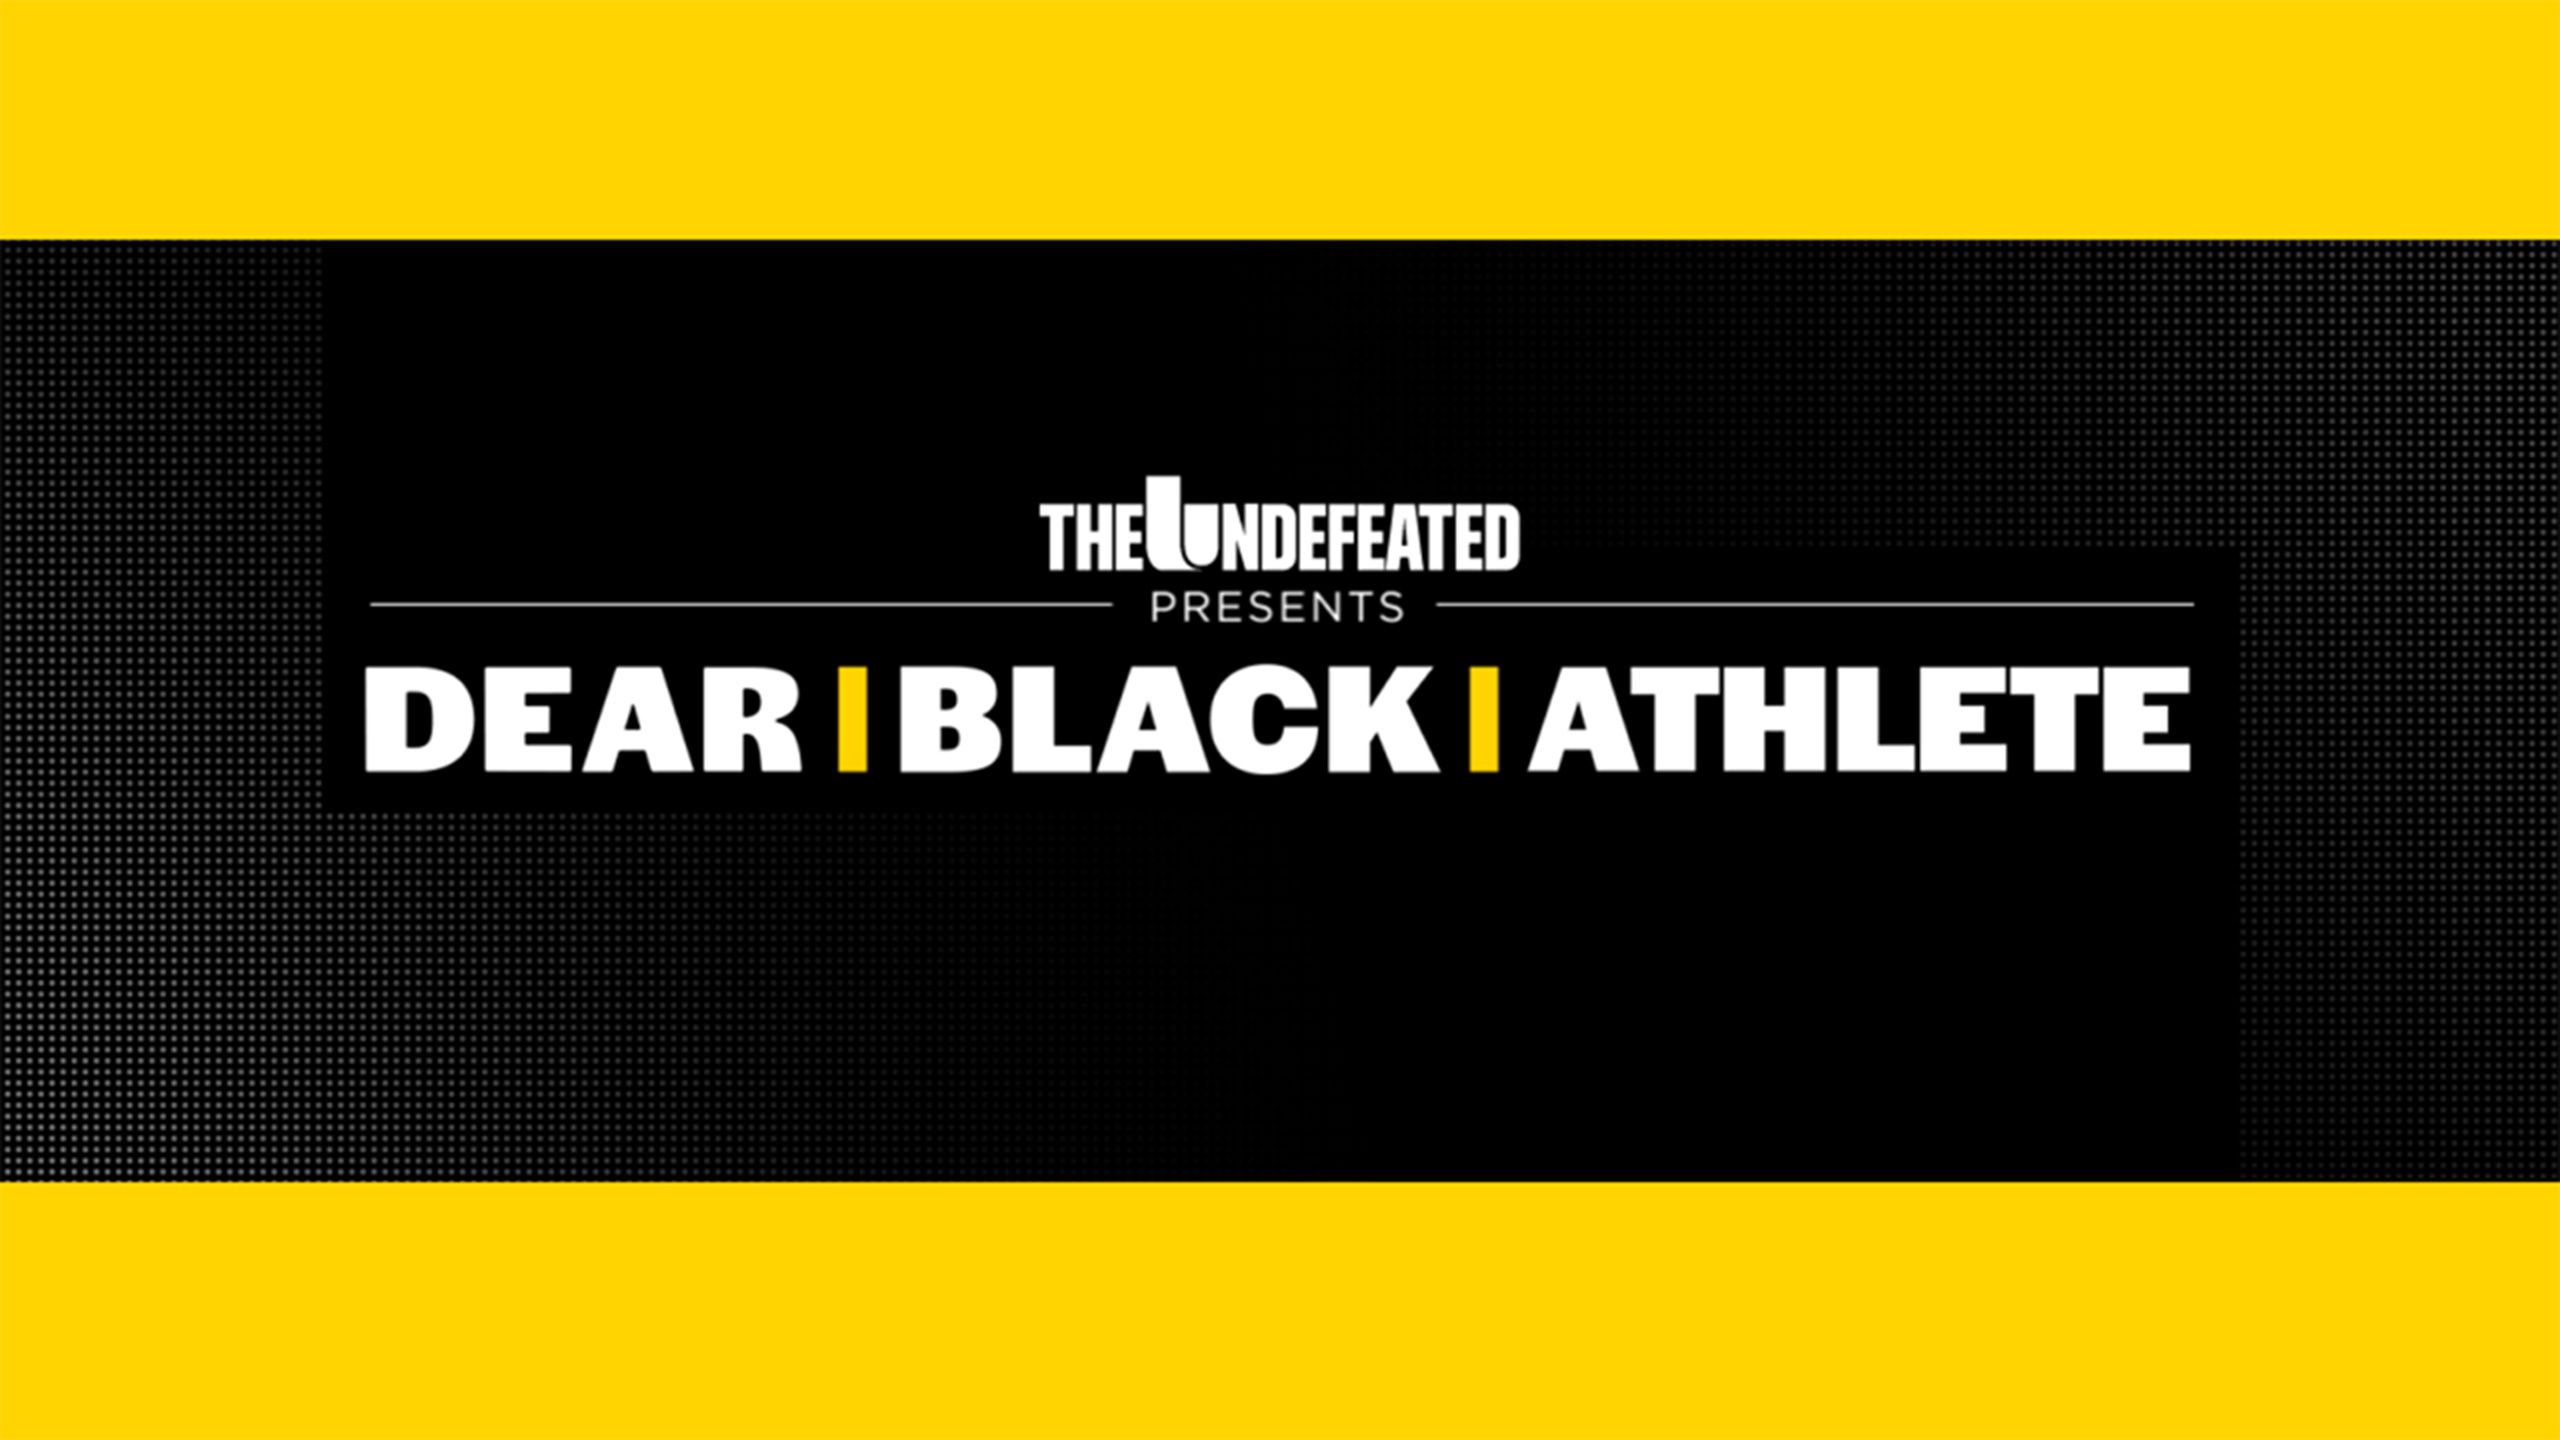 The Undefeated Presents: Dear Black Athlete